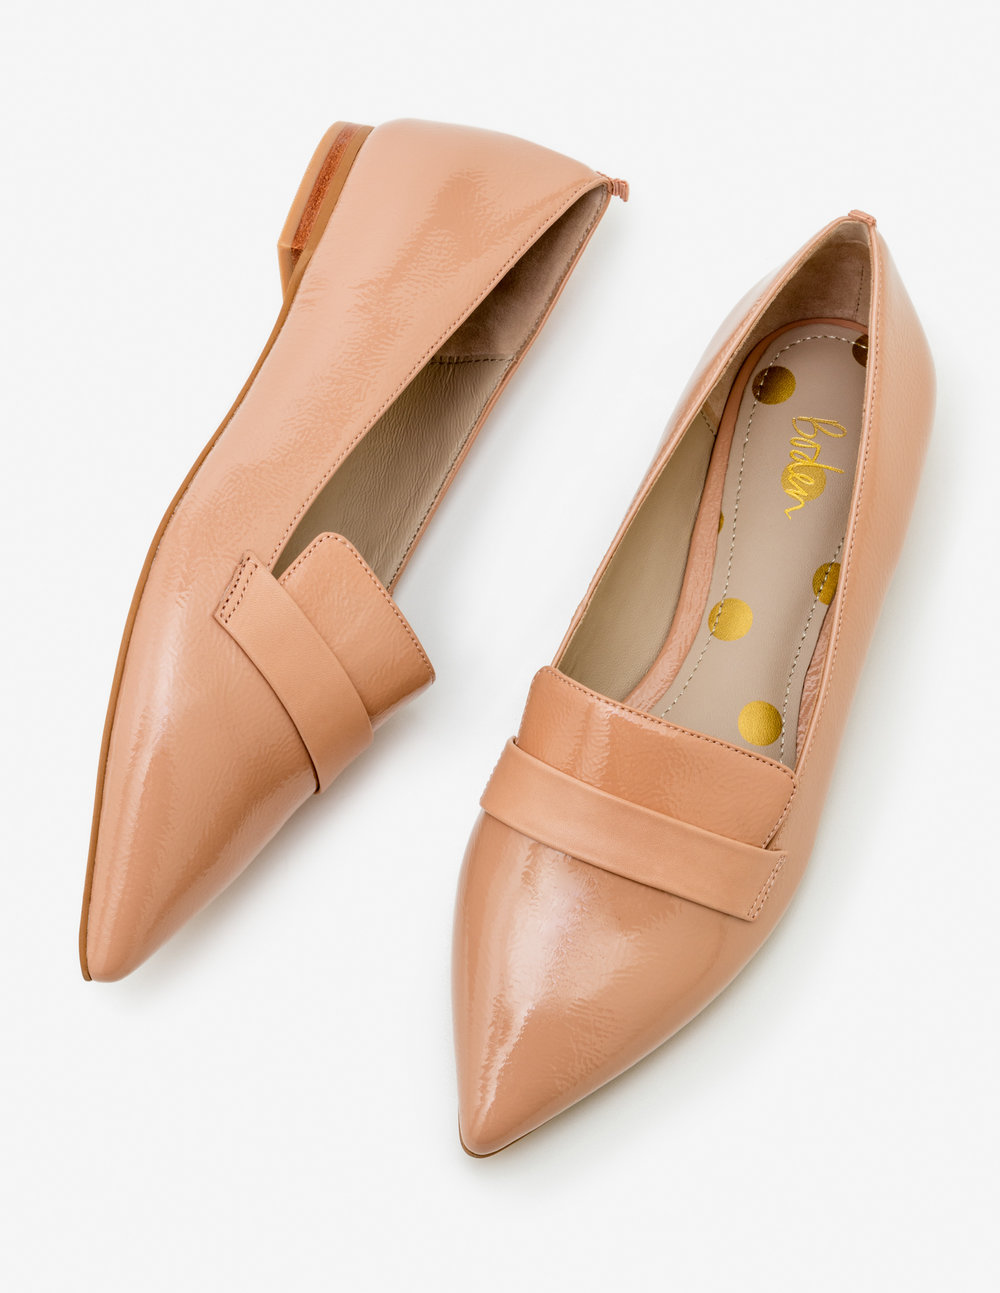 OCTAVIA POINTED LOAFERS. Boden. Was $130.00 Now $78.00 To $104.00 (no size N)